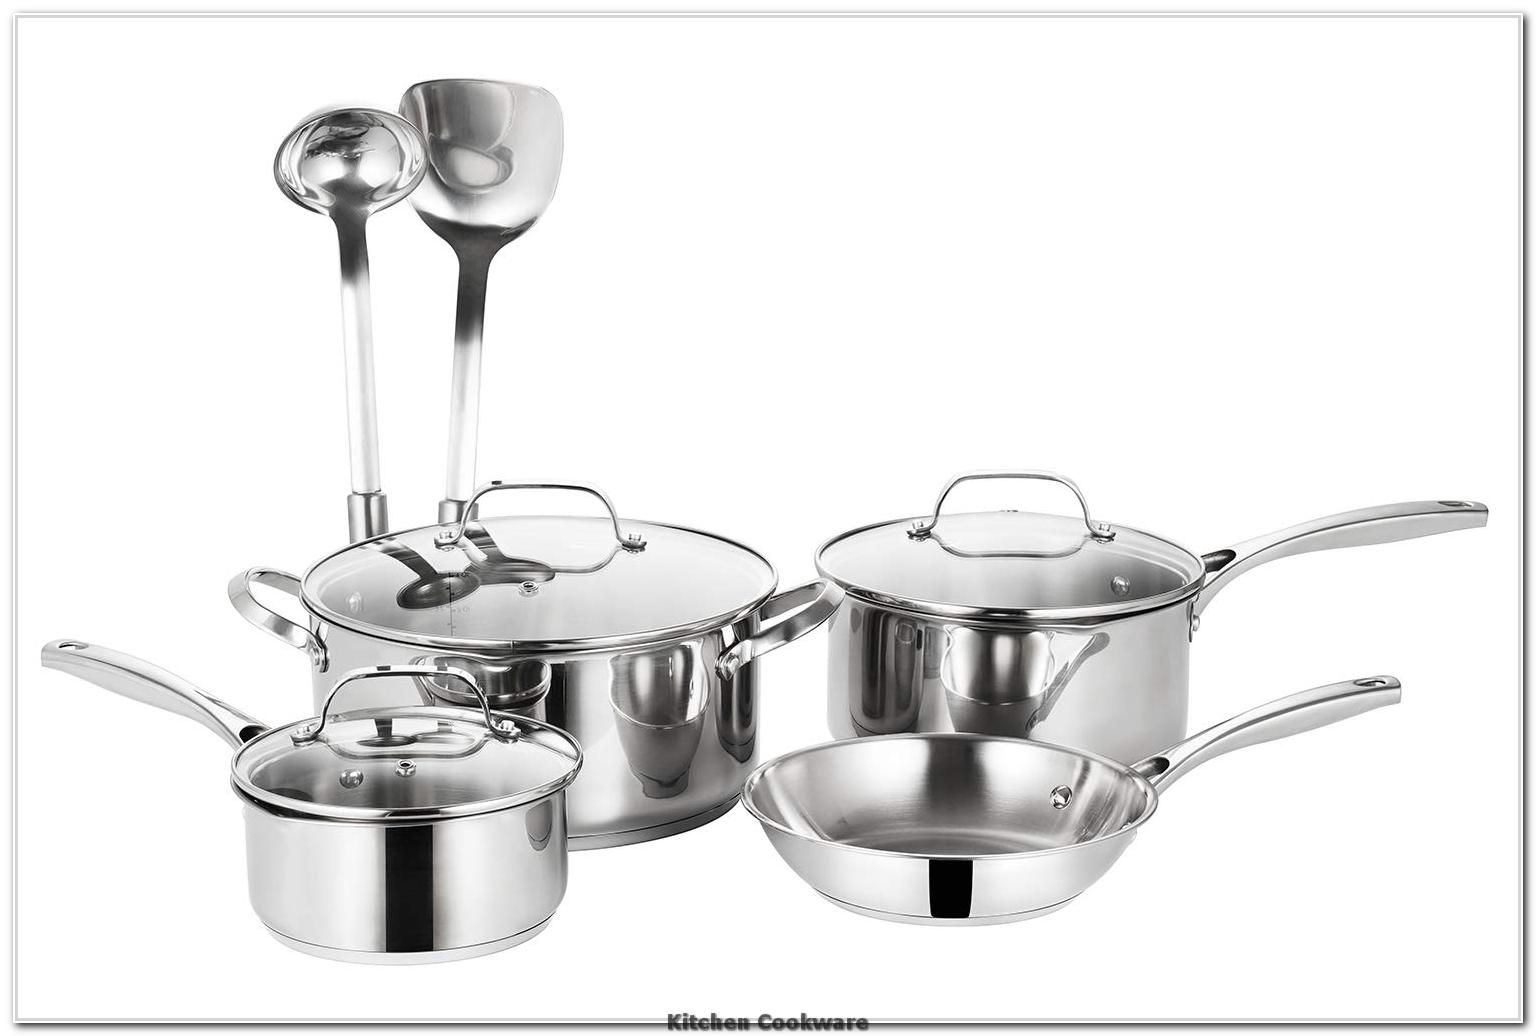 Ss304 Stainless Steel Cookware Set